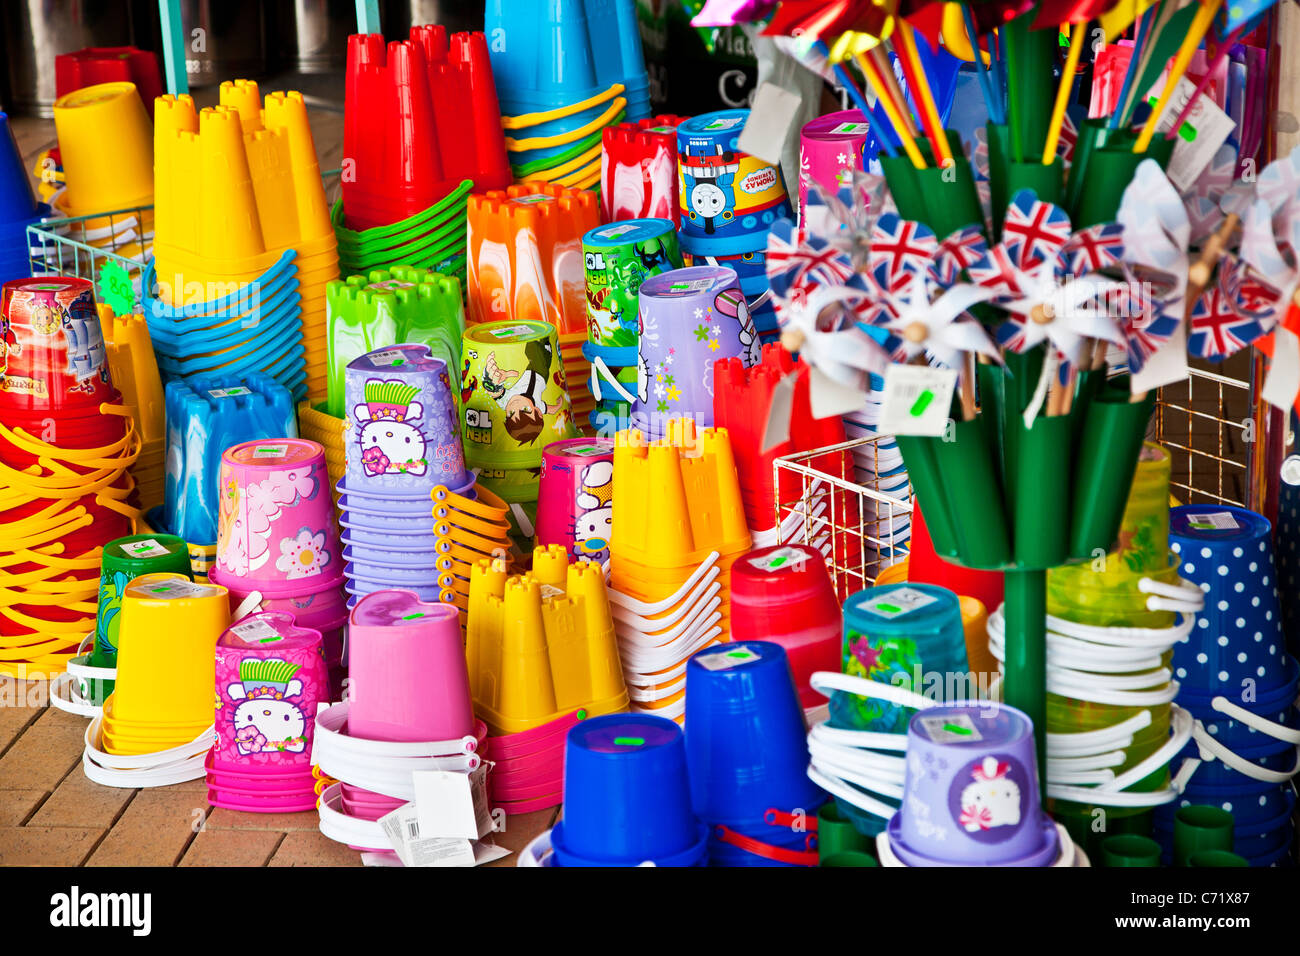 Brightly coloured children's plastic beach toys and buckets on display outside a seaside shop. - Stock Image